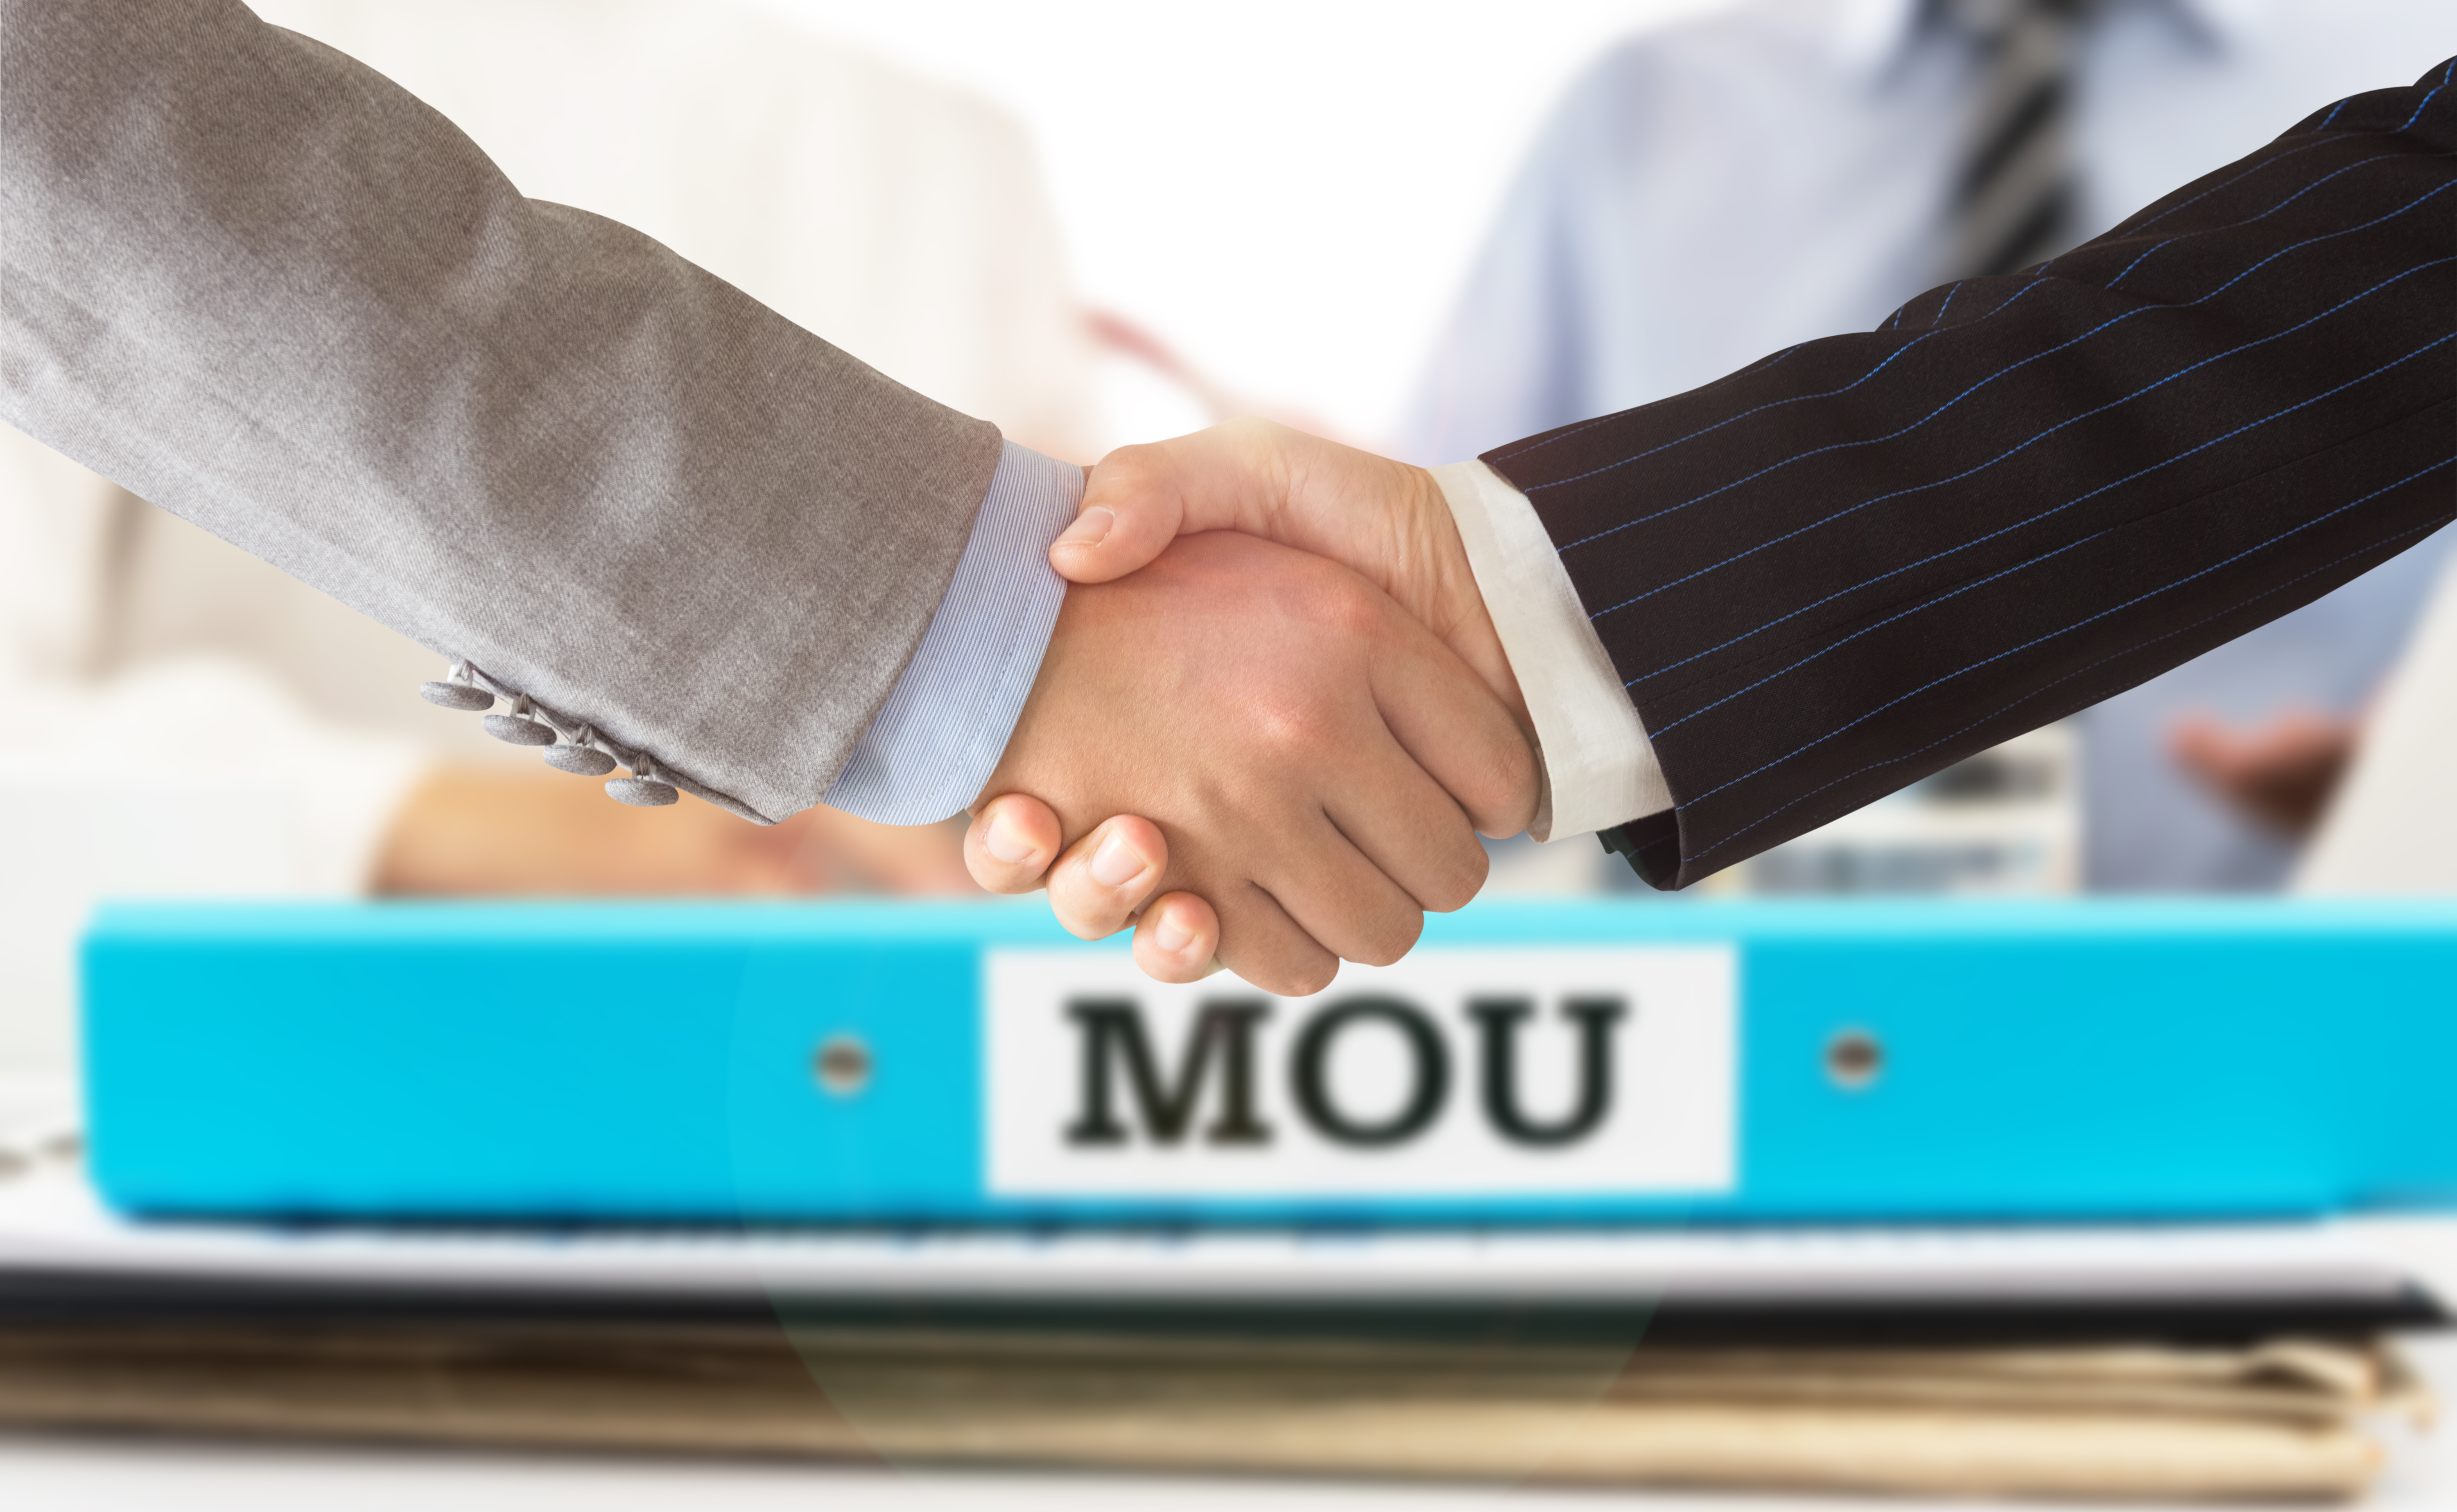 UPES-Oracle MoU